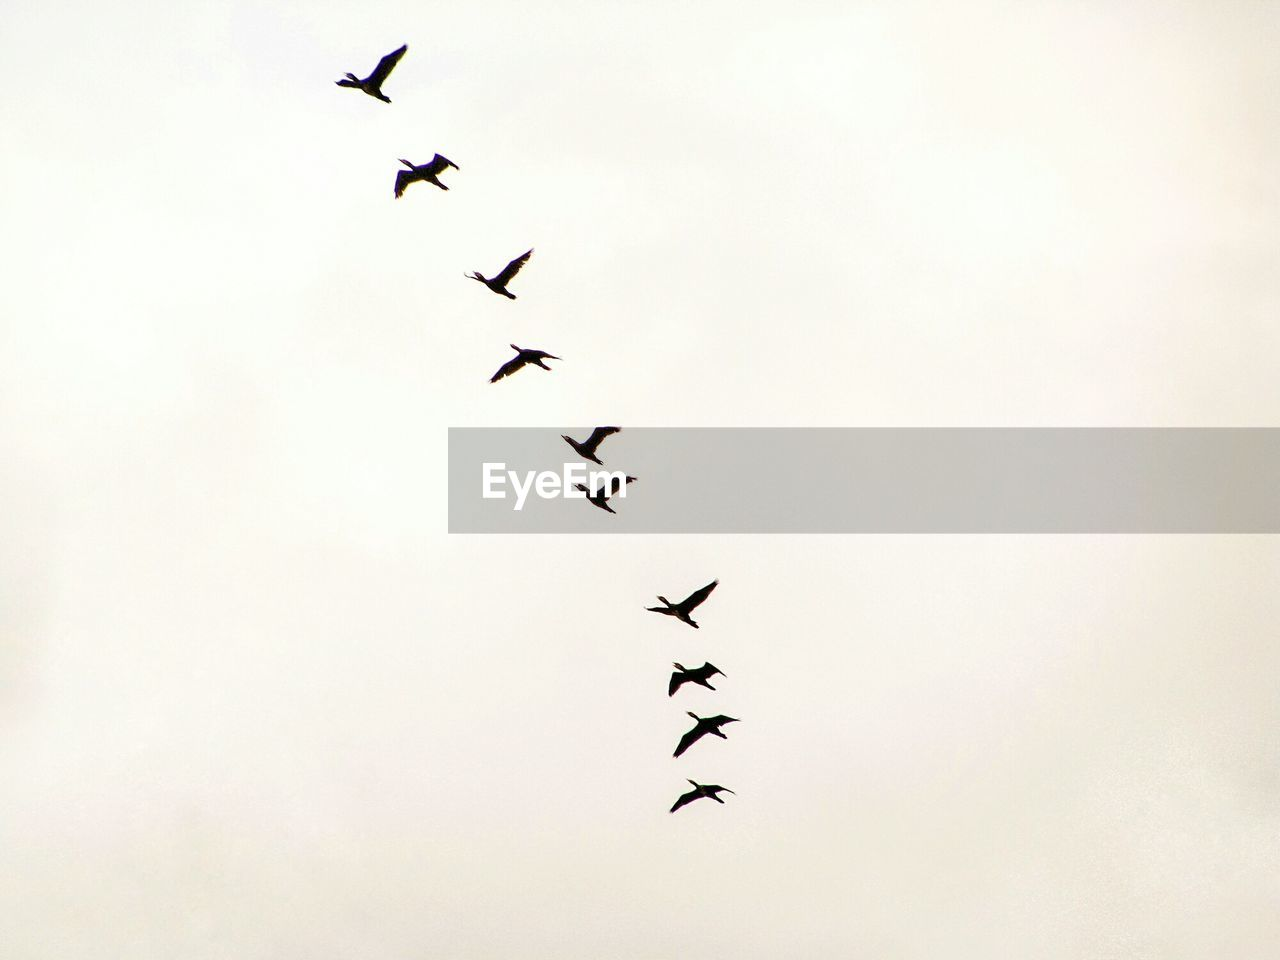 bird, vertebrate, animal, animal themes, flying, animals in the wild, group of animals, sky, animal wildlife, low angle view, large group of animals, flock of birds, mid-air, nature, no people, motion, day, order, beauty in nature, togetherness, plane